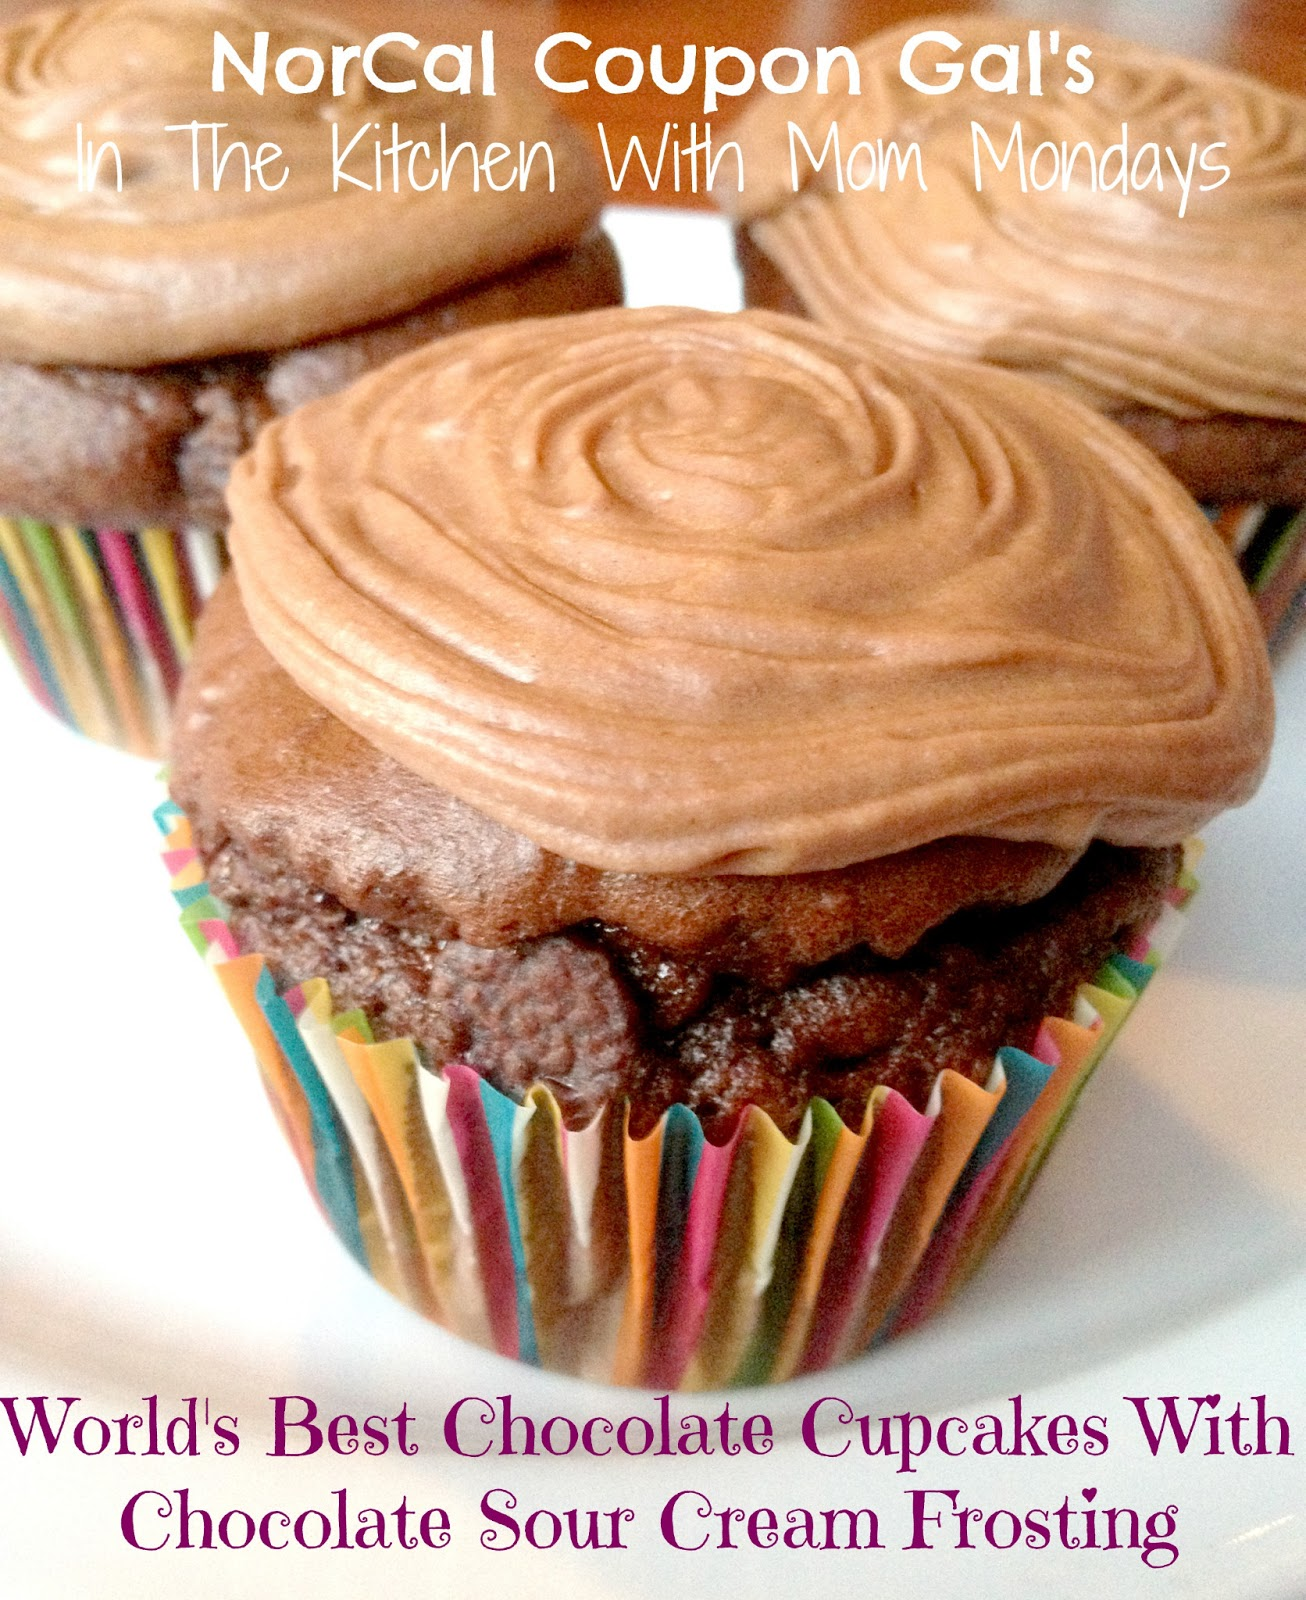 In The Kitchen With Mom Mondays: World&#8217;s best chocolate cupcakes with chocolate sour cream frosting